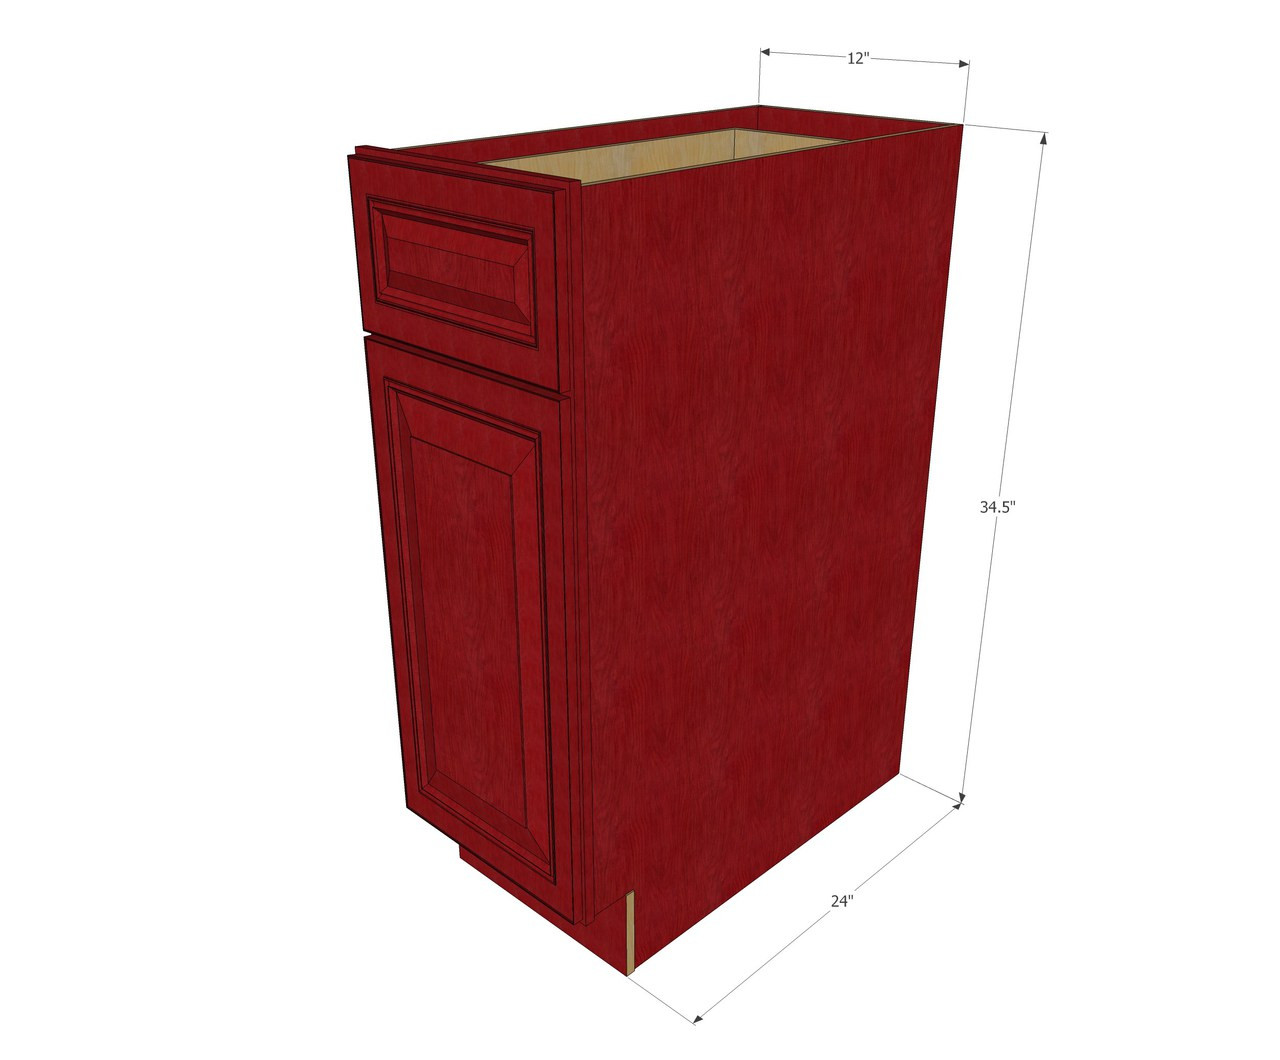 Grand Reserve Cherry Small Base Cabinet With 12 Inch Door Drawer Kitchen Cabinet Warehouse